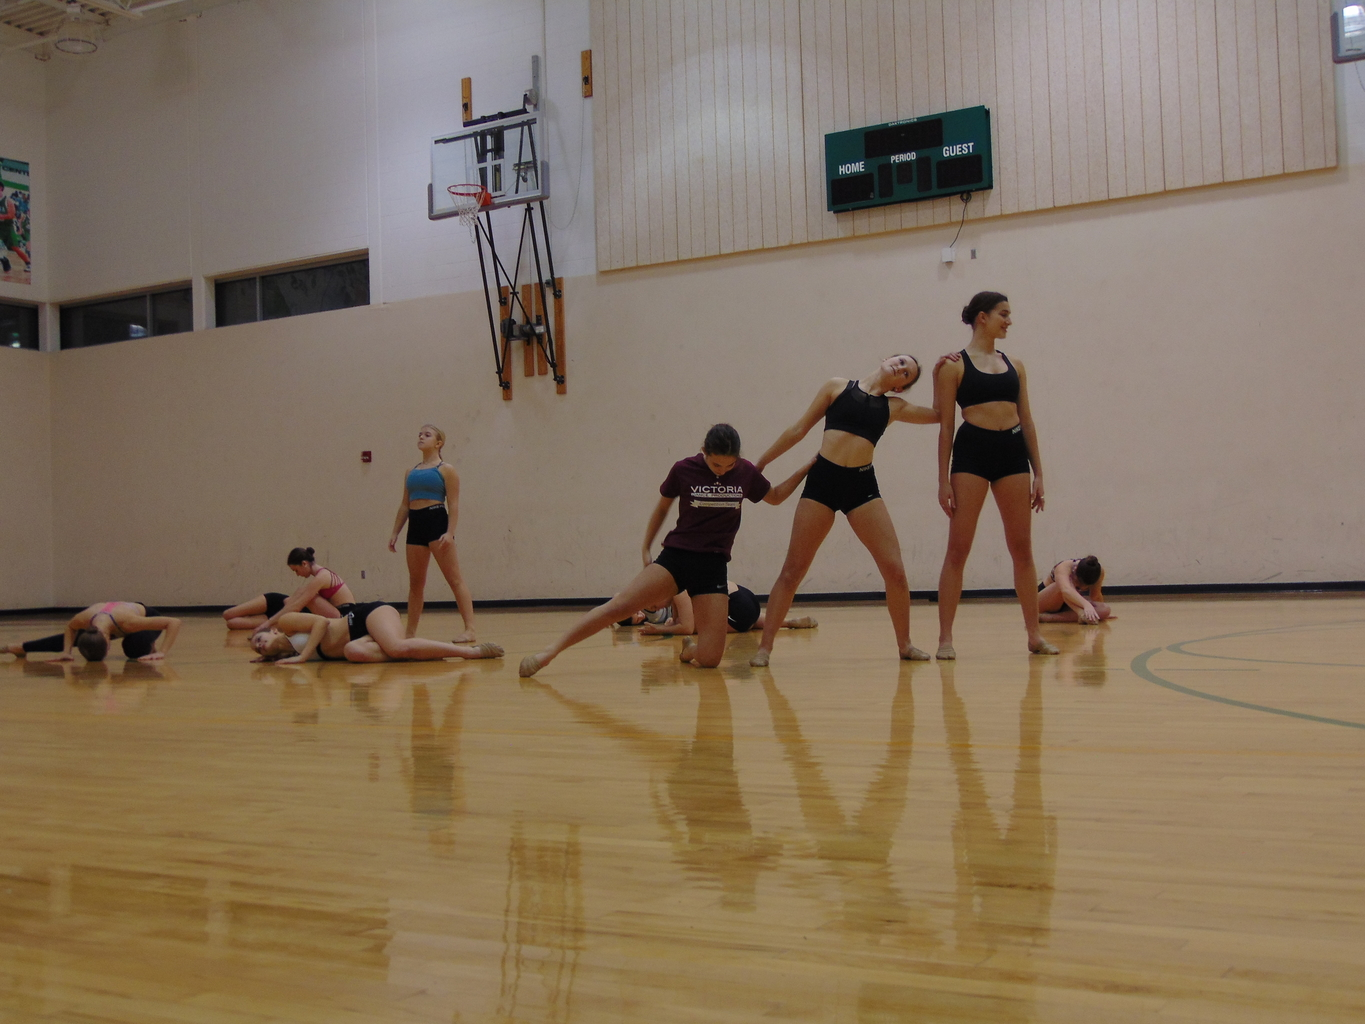 Springing with spirit: The dance team prepares for a new season.